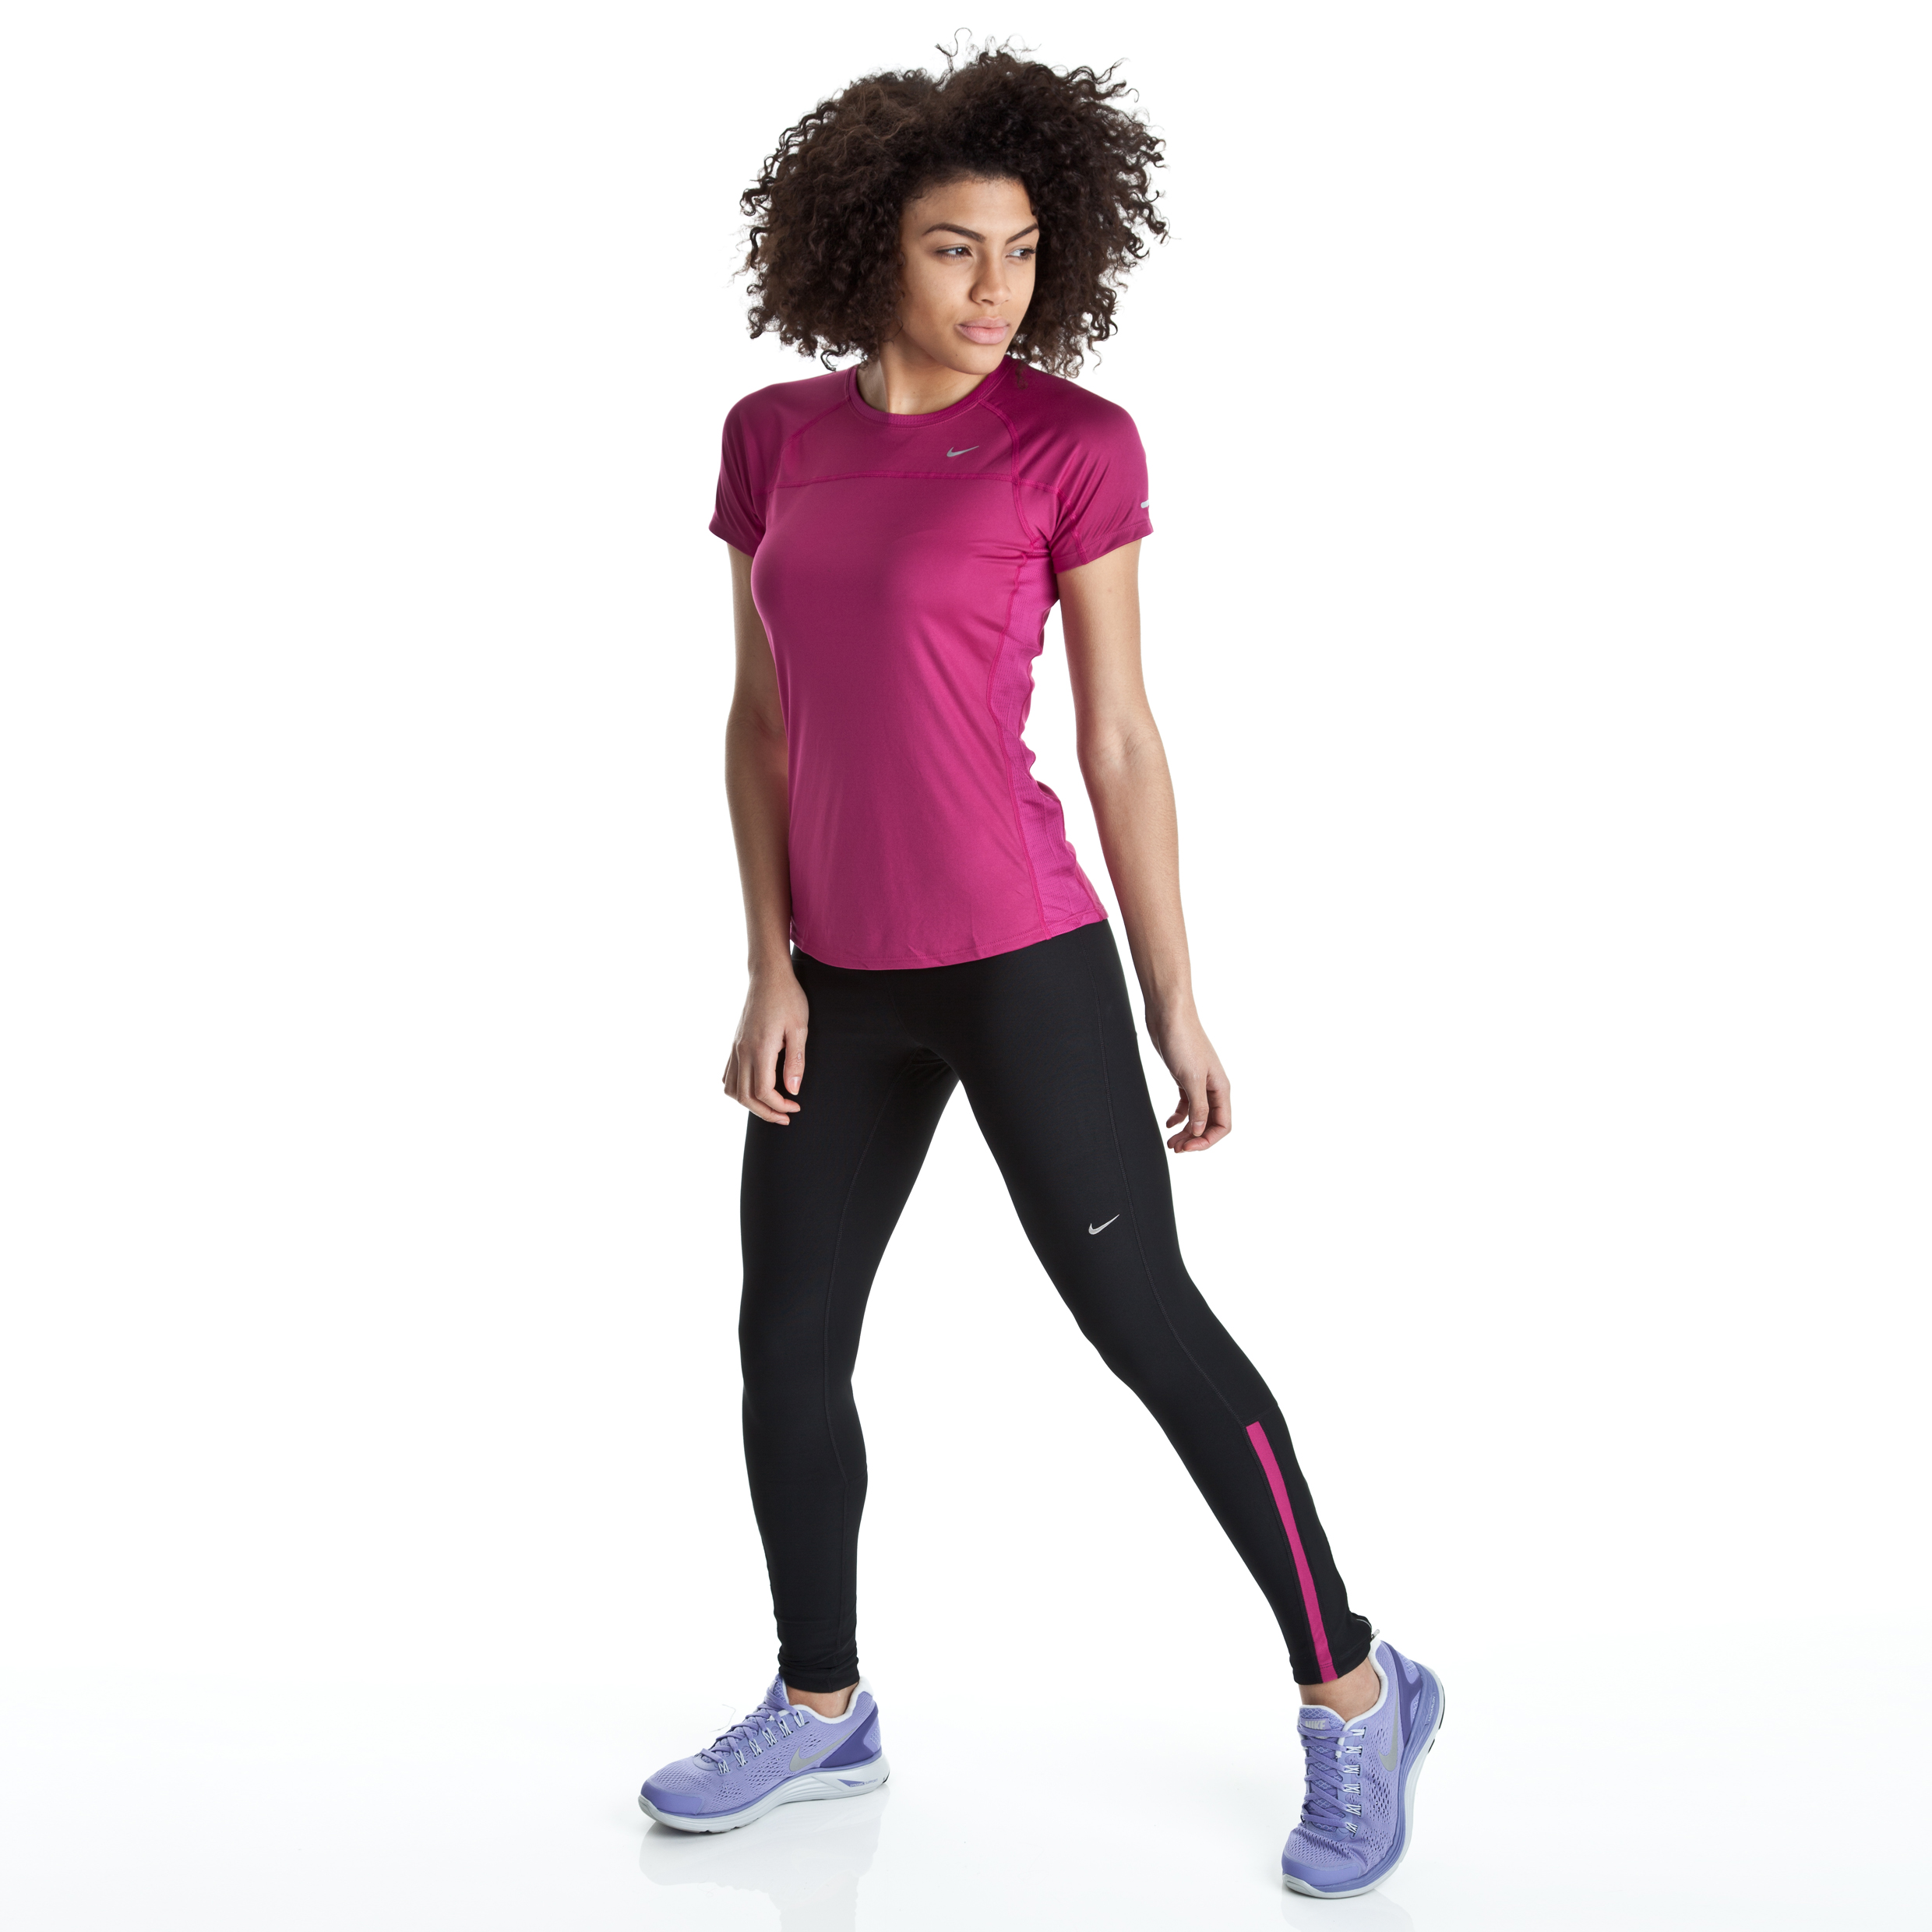 Nike Filament Tights - Black/Rave Pink/Matte Silver - Womens